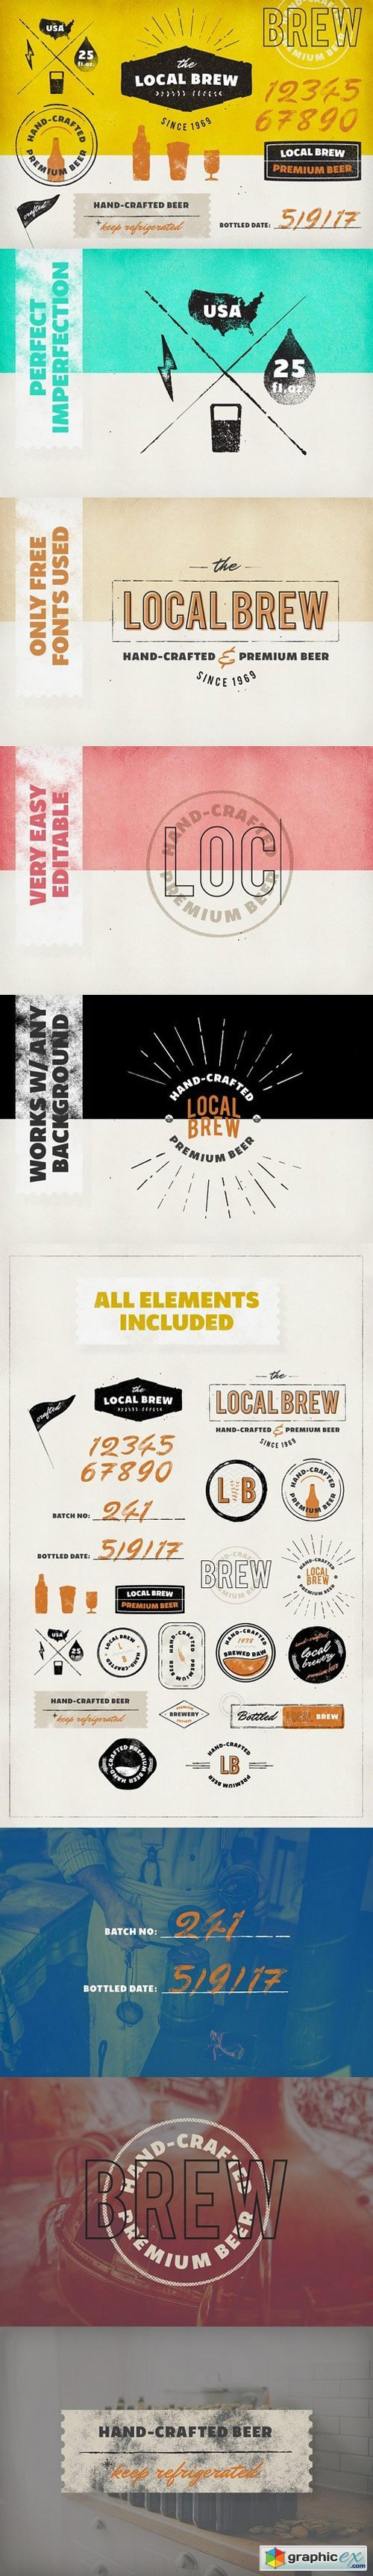 Vintage Logos & Badges: Local Brew